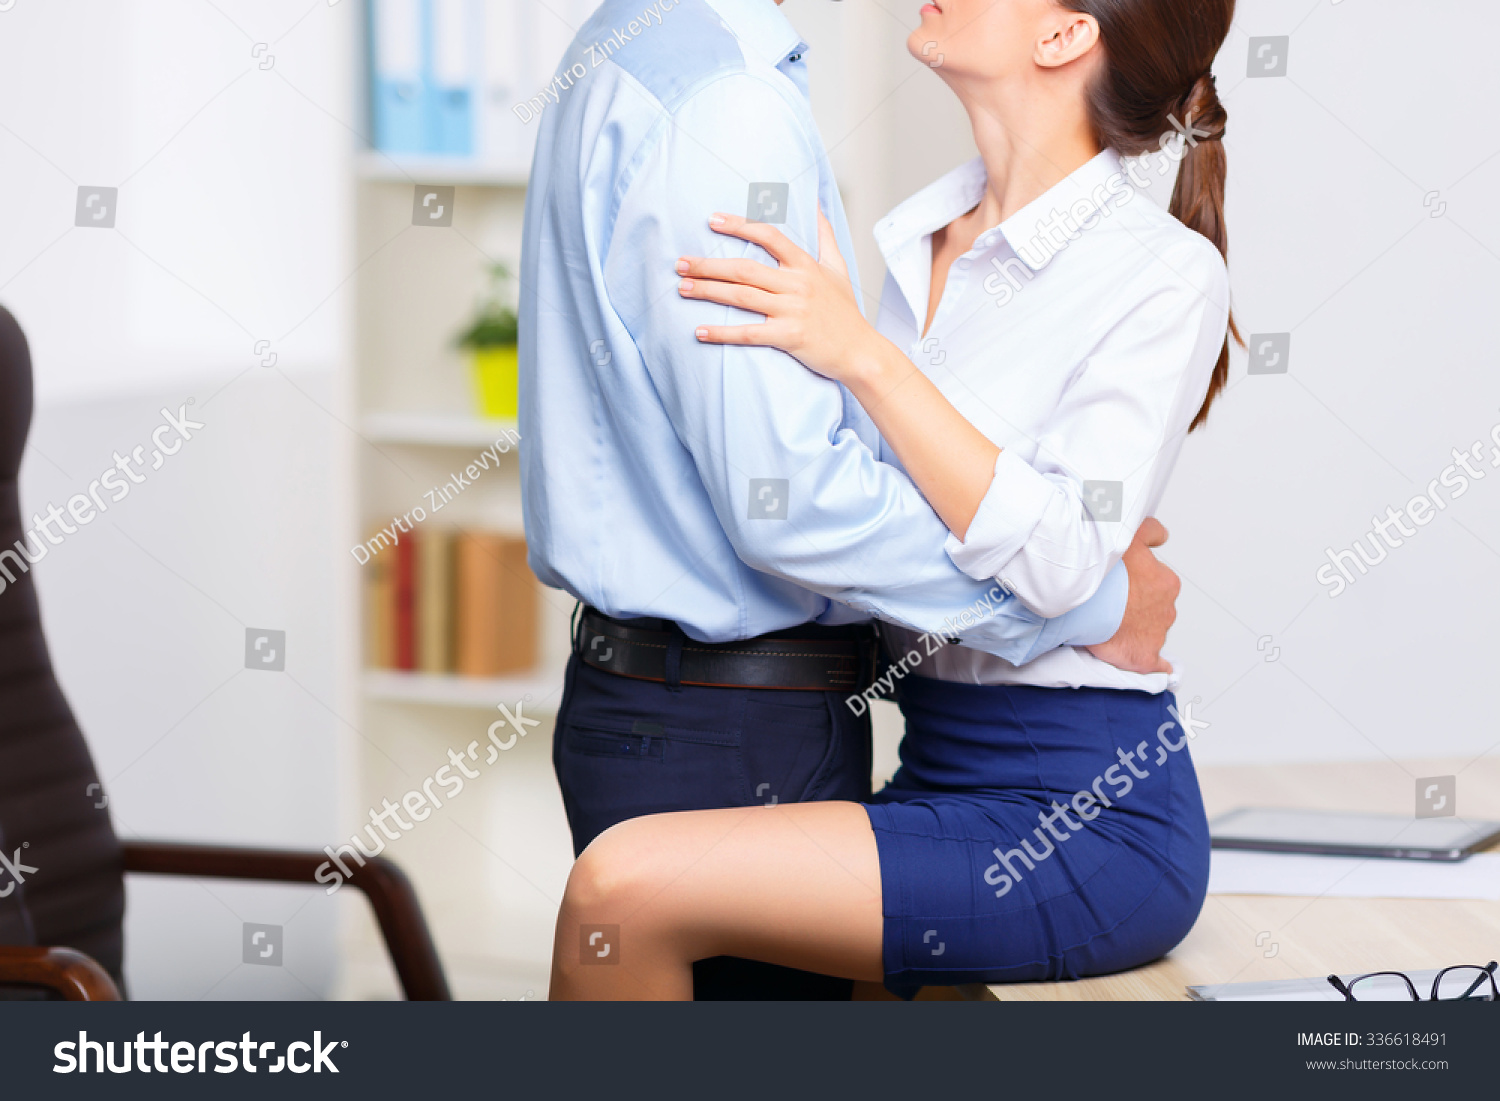 Office foreplay